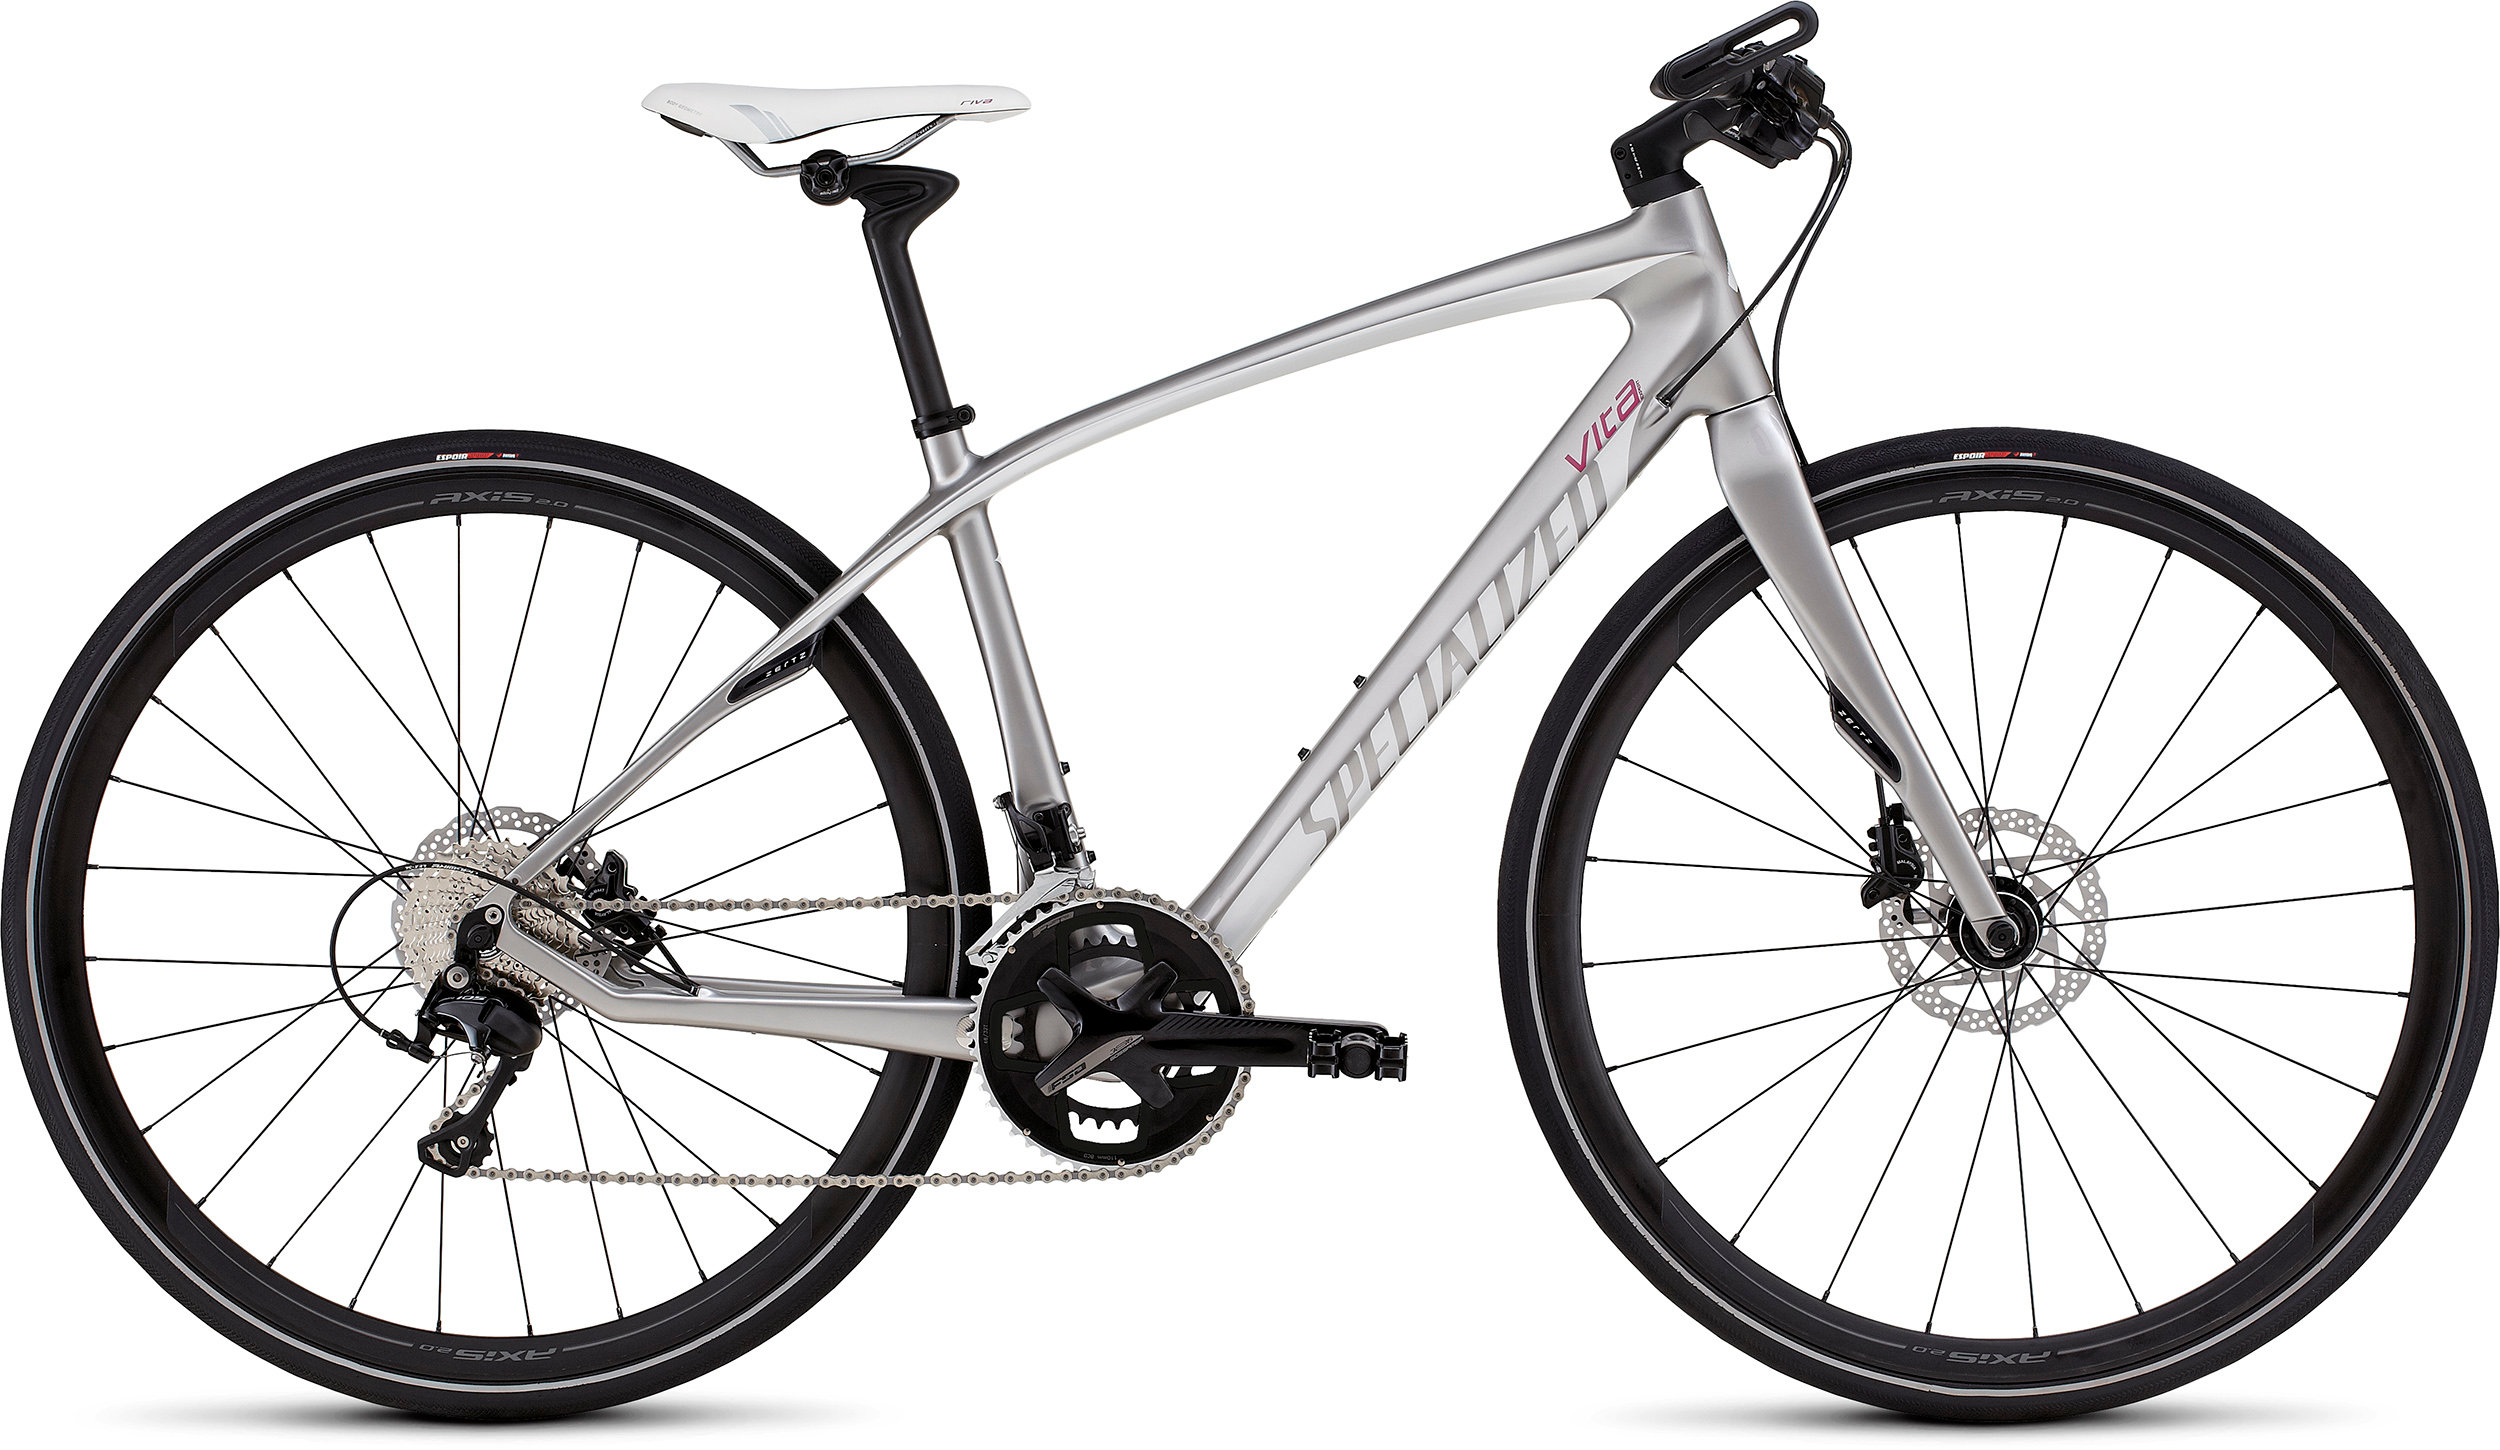 SPECIALIZED VITA EXPERT CARBON DISC PLAT/MCRPRLWHT/PNK S - SPECIALIZED VITA EXPERT CARBON DISC PLAT/MCRPRLWHT/PNK S